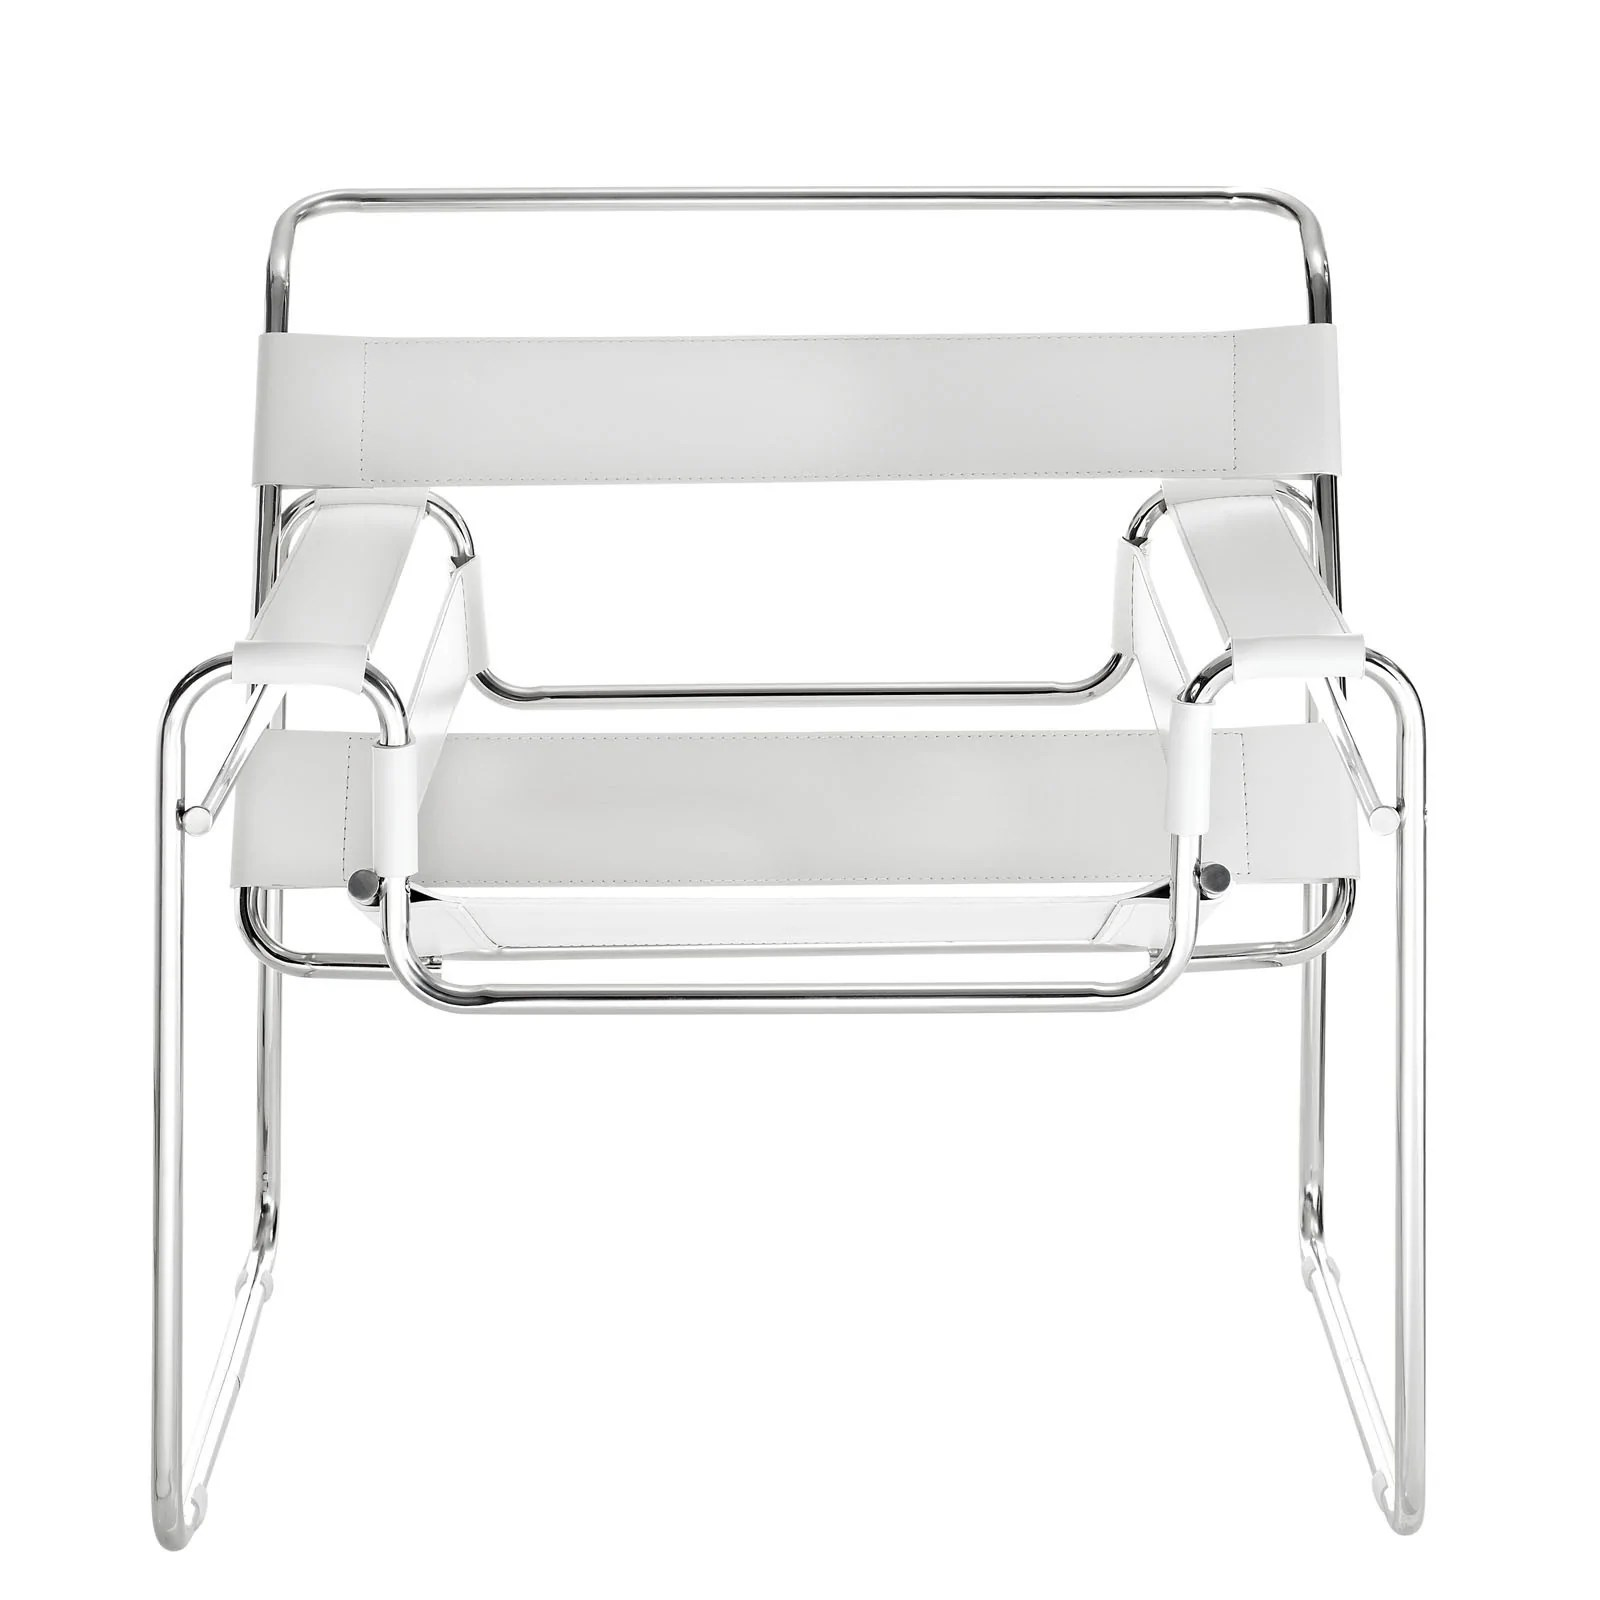 Wassily Chair Reproduction Wassily Chair Reproduction The Modern Source